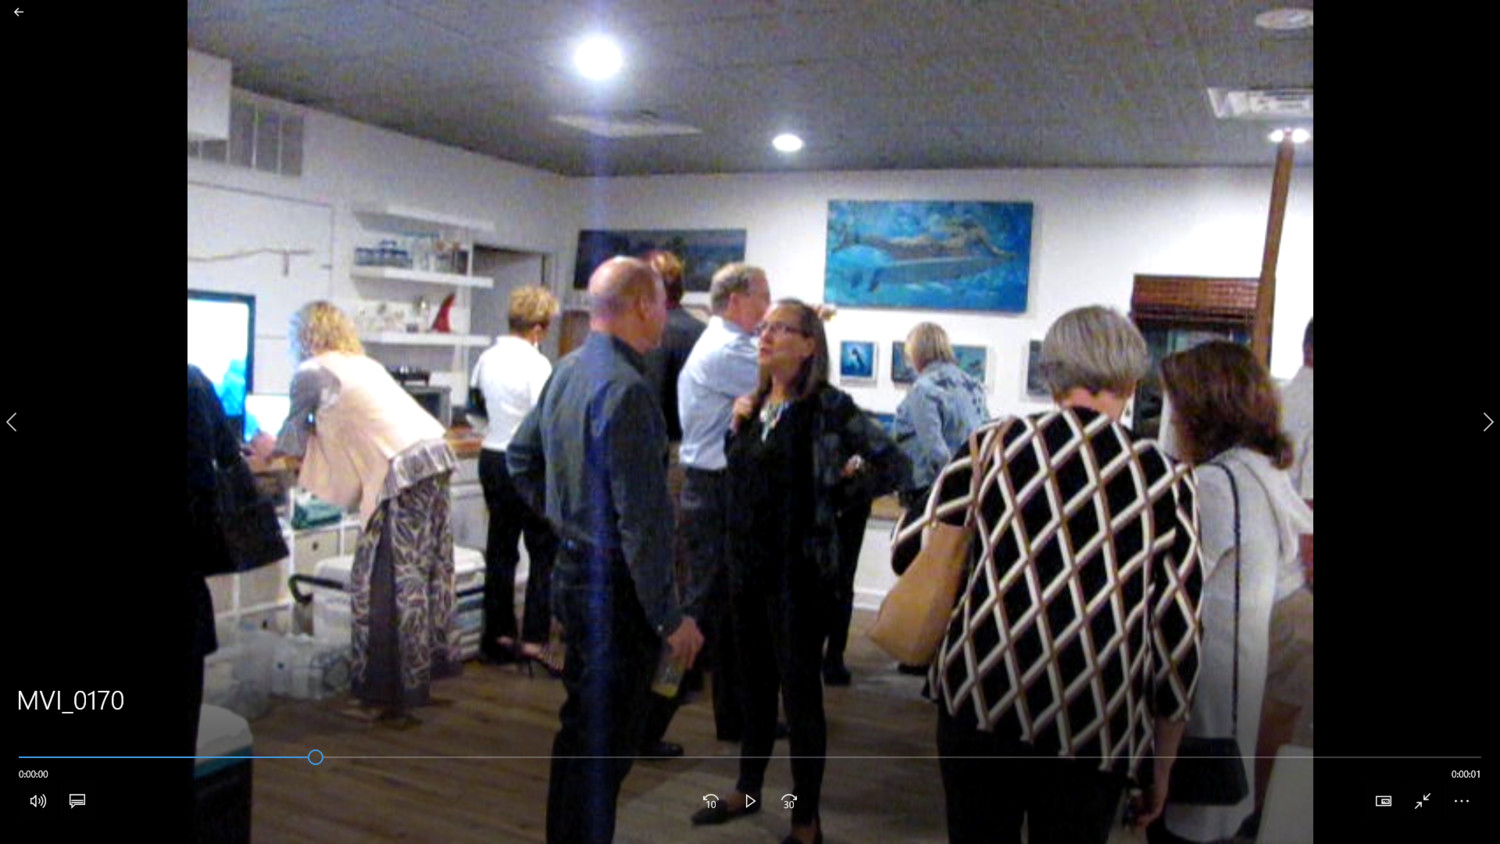 Save Guana Now co-founder Nicole Crosby (center) talks with guests during a fundraiser at the Coquina Studio Gallery in Jacksonville Beach.